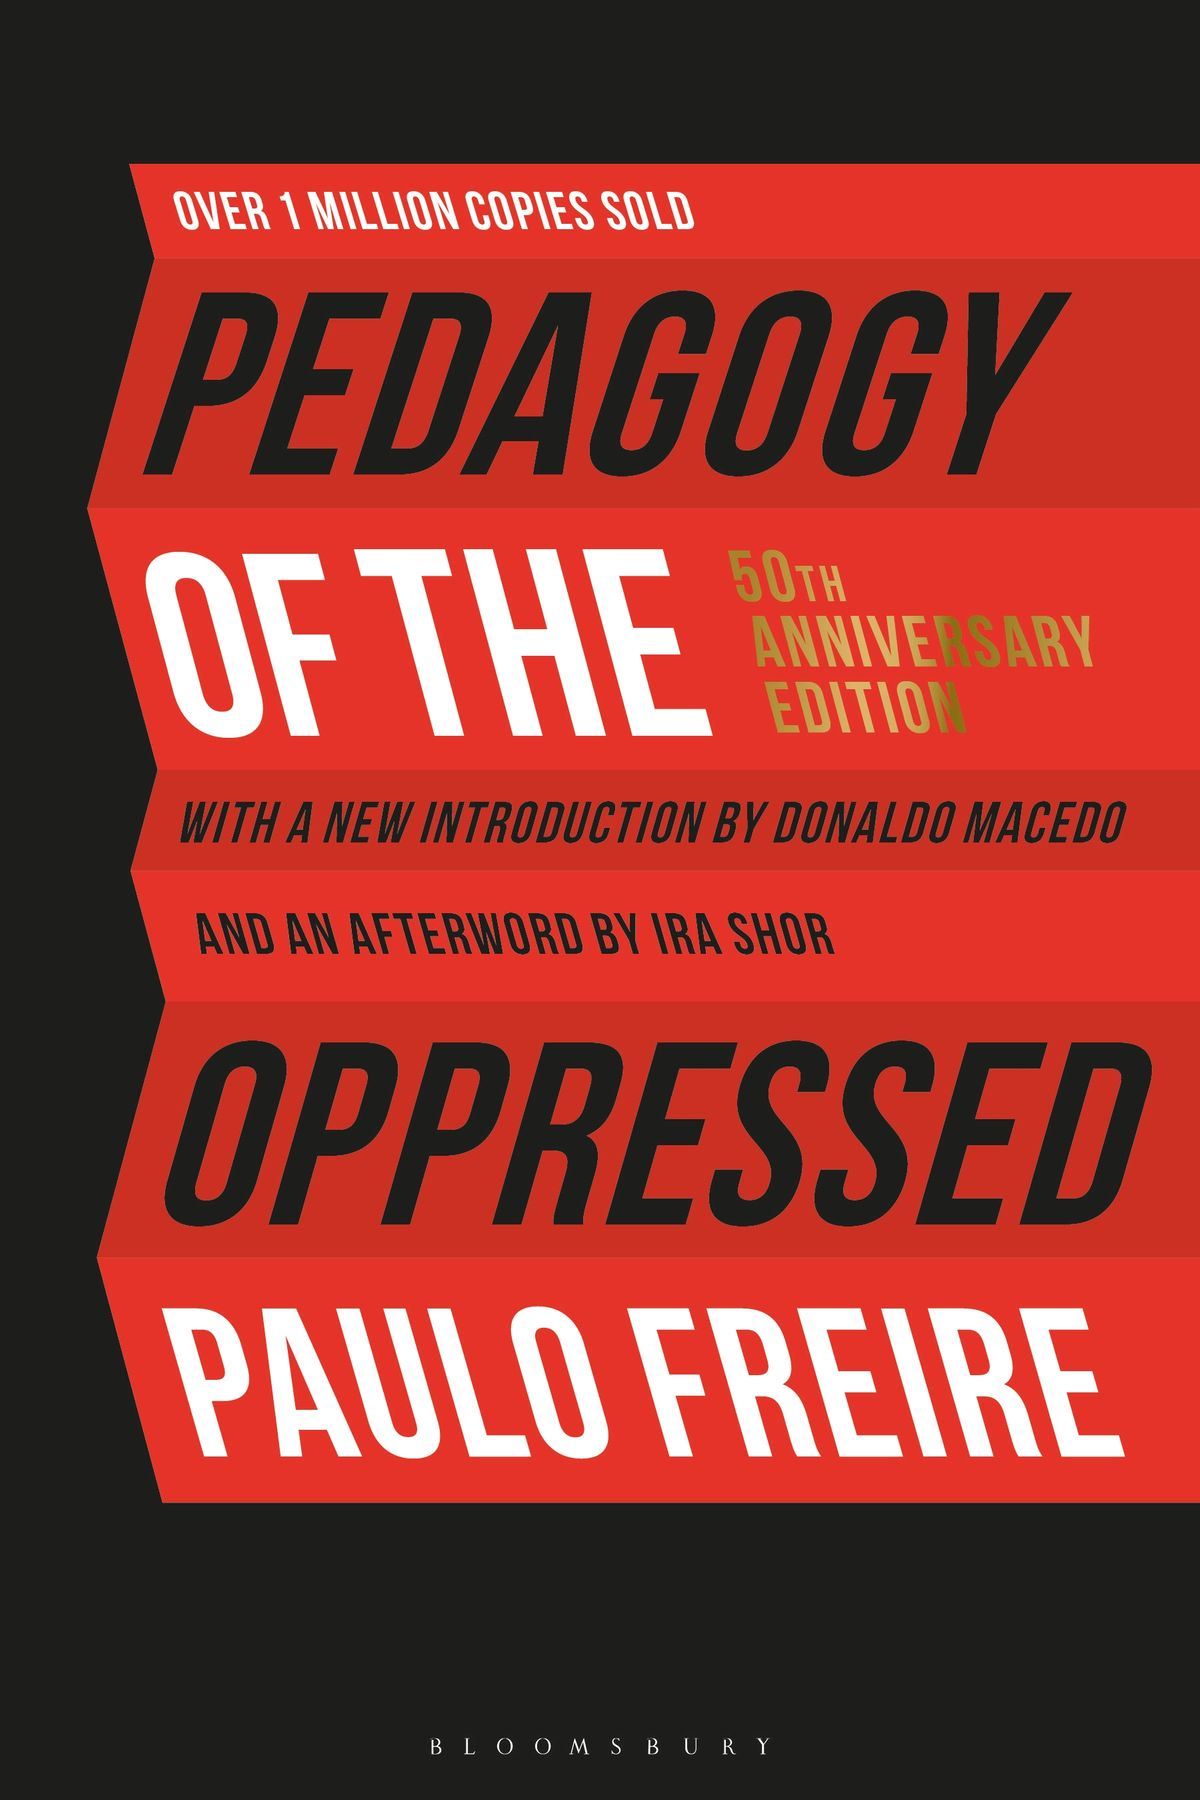 Freire, Paulo, Pedagogy of the Oppressed